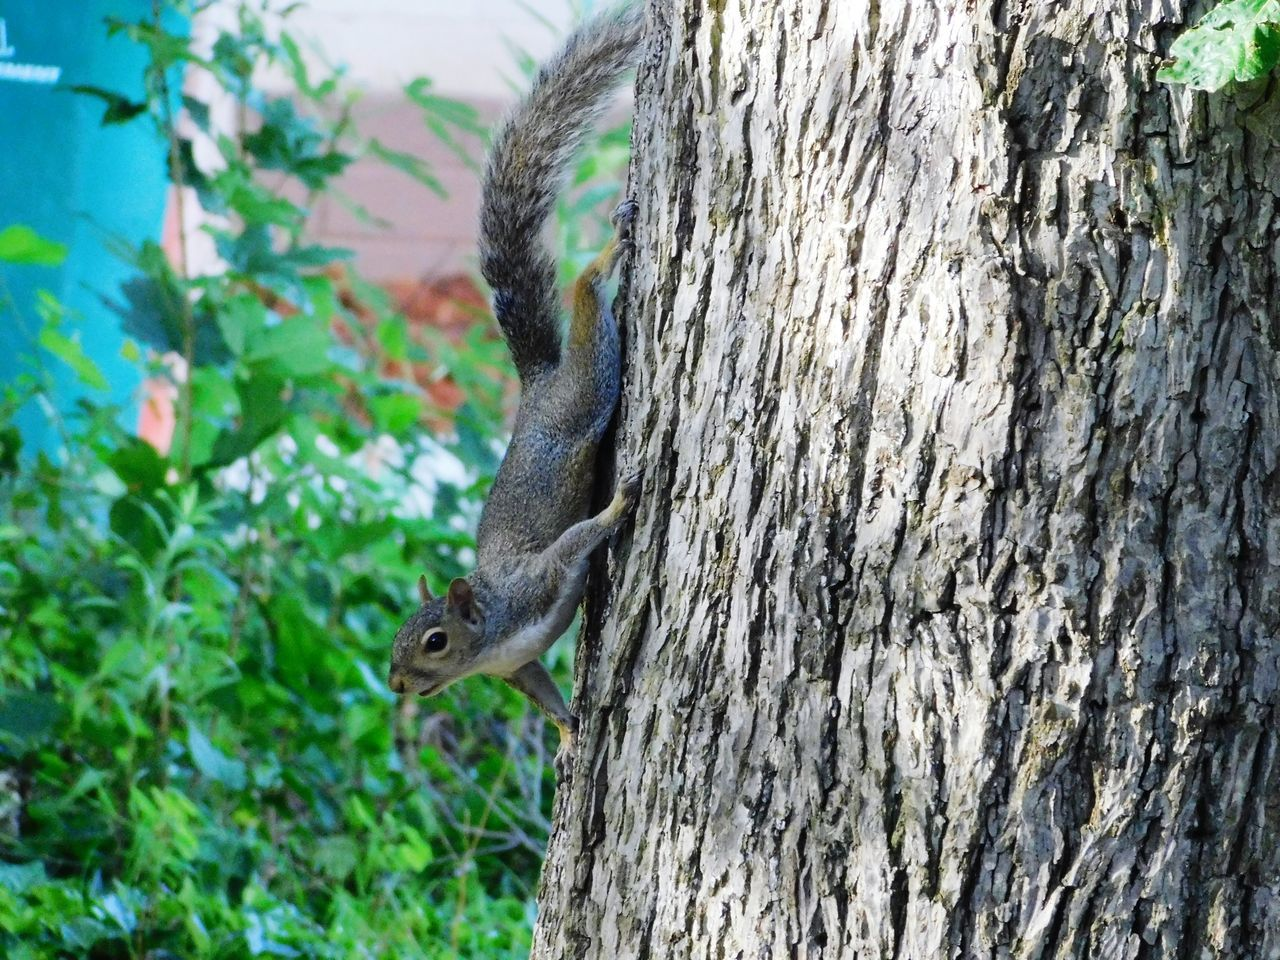 one animal, animal themes, animals in the wild, tree, animal wildlife, day, tree trunk, mammal, no people, squirrel, nature, outdoors, focus on foreground, bat - animal, close-up, beauty in nature, bird